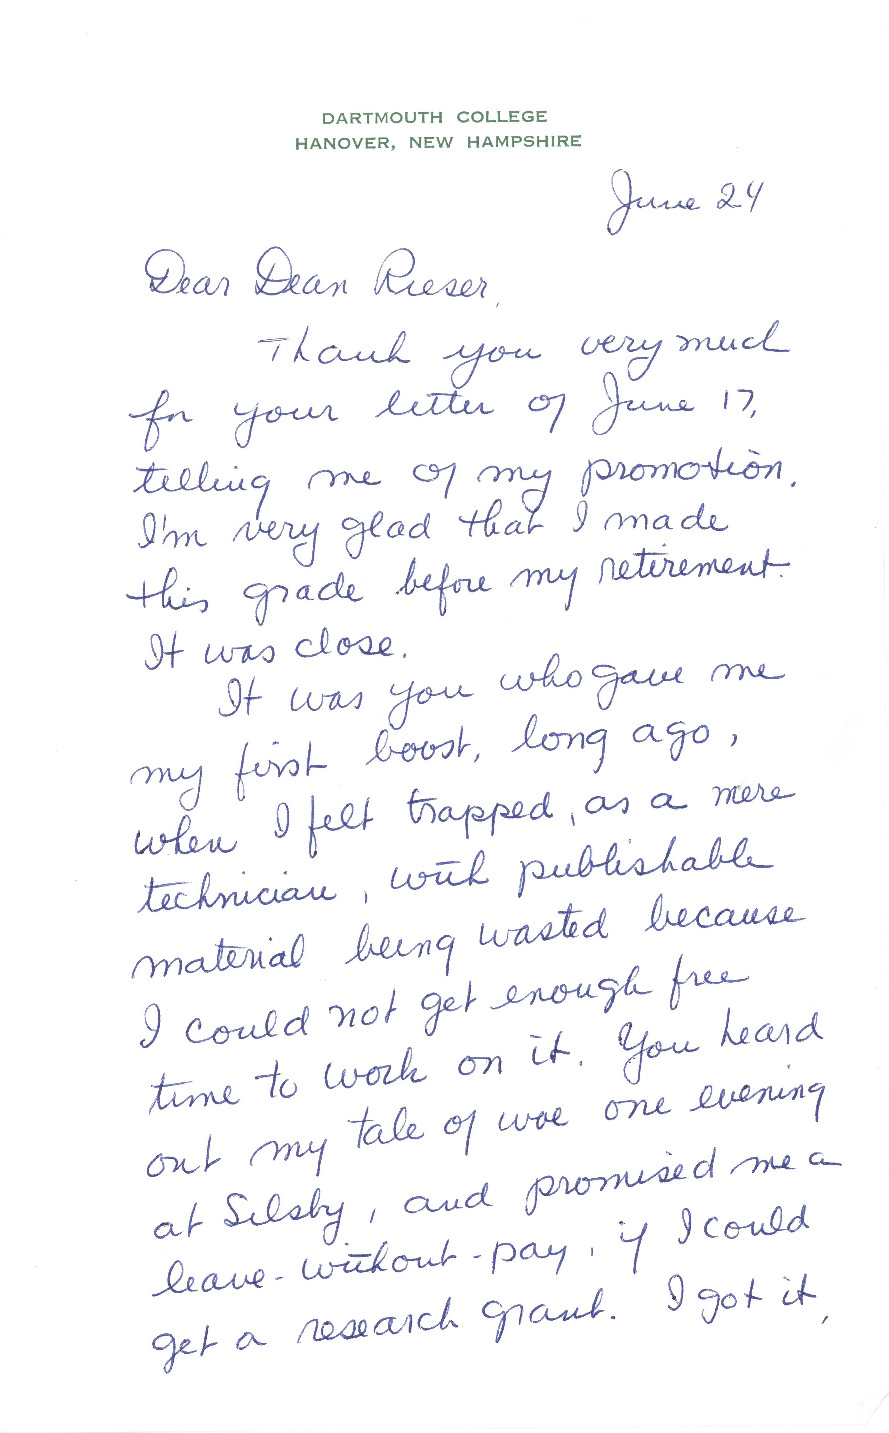 "Prof. Croasdale writes Rieser to thank him for her recent promotion from Assistant Professor with tenure to the rank of full Professor. She takes the time to acknowledge Rieser's role in her rise through the ranks throughout her Dartmouth career: ""It was you who gave me my first boost, long ago, when I felt trapped as a mere technician..."" The letter still contains her trademark biting and ironic humor, towards both the institution and herself: ""I'm very glad that I made this grade [full Professor] before my retirement. It was close... It's not what I'd call a brilliant career, but it's been fun most of the time, and I'm still going strong--I hope."""